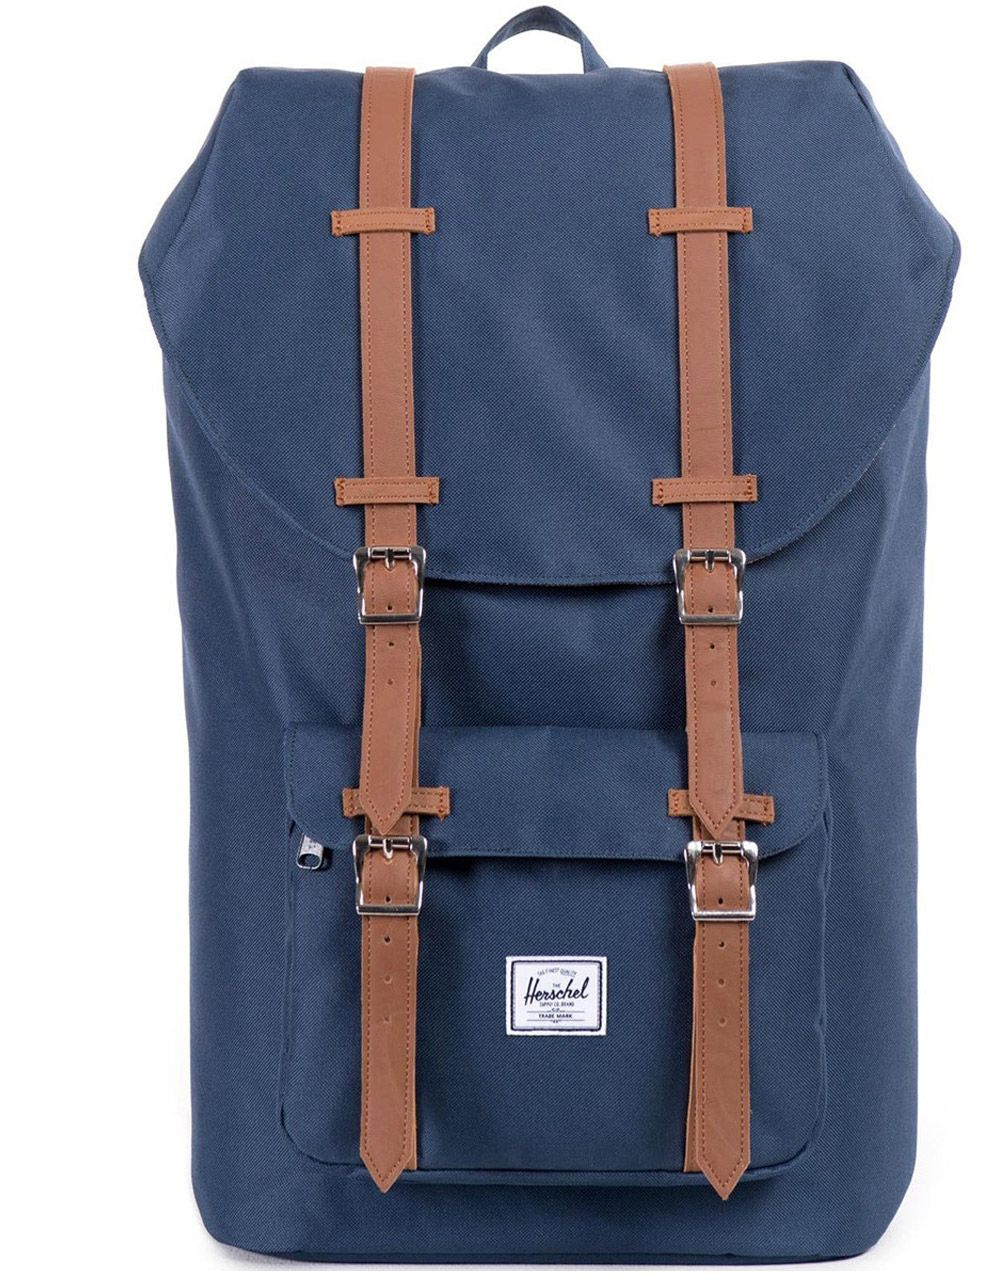 HERSCHEL рюкзак LITTLE AMERICA Navy/Tan Synthetic Leather